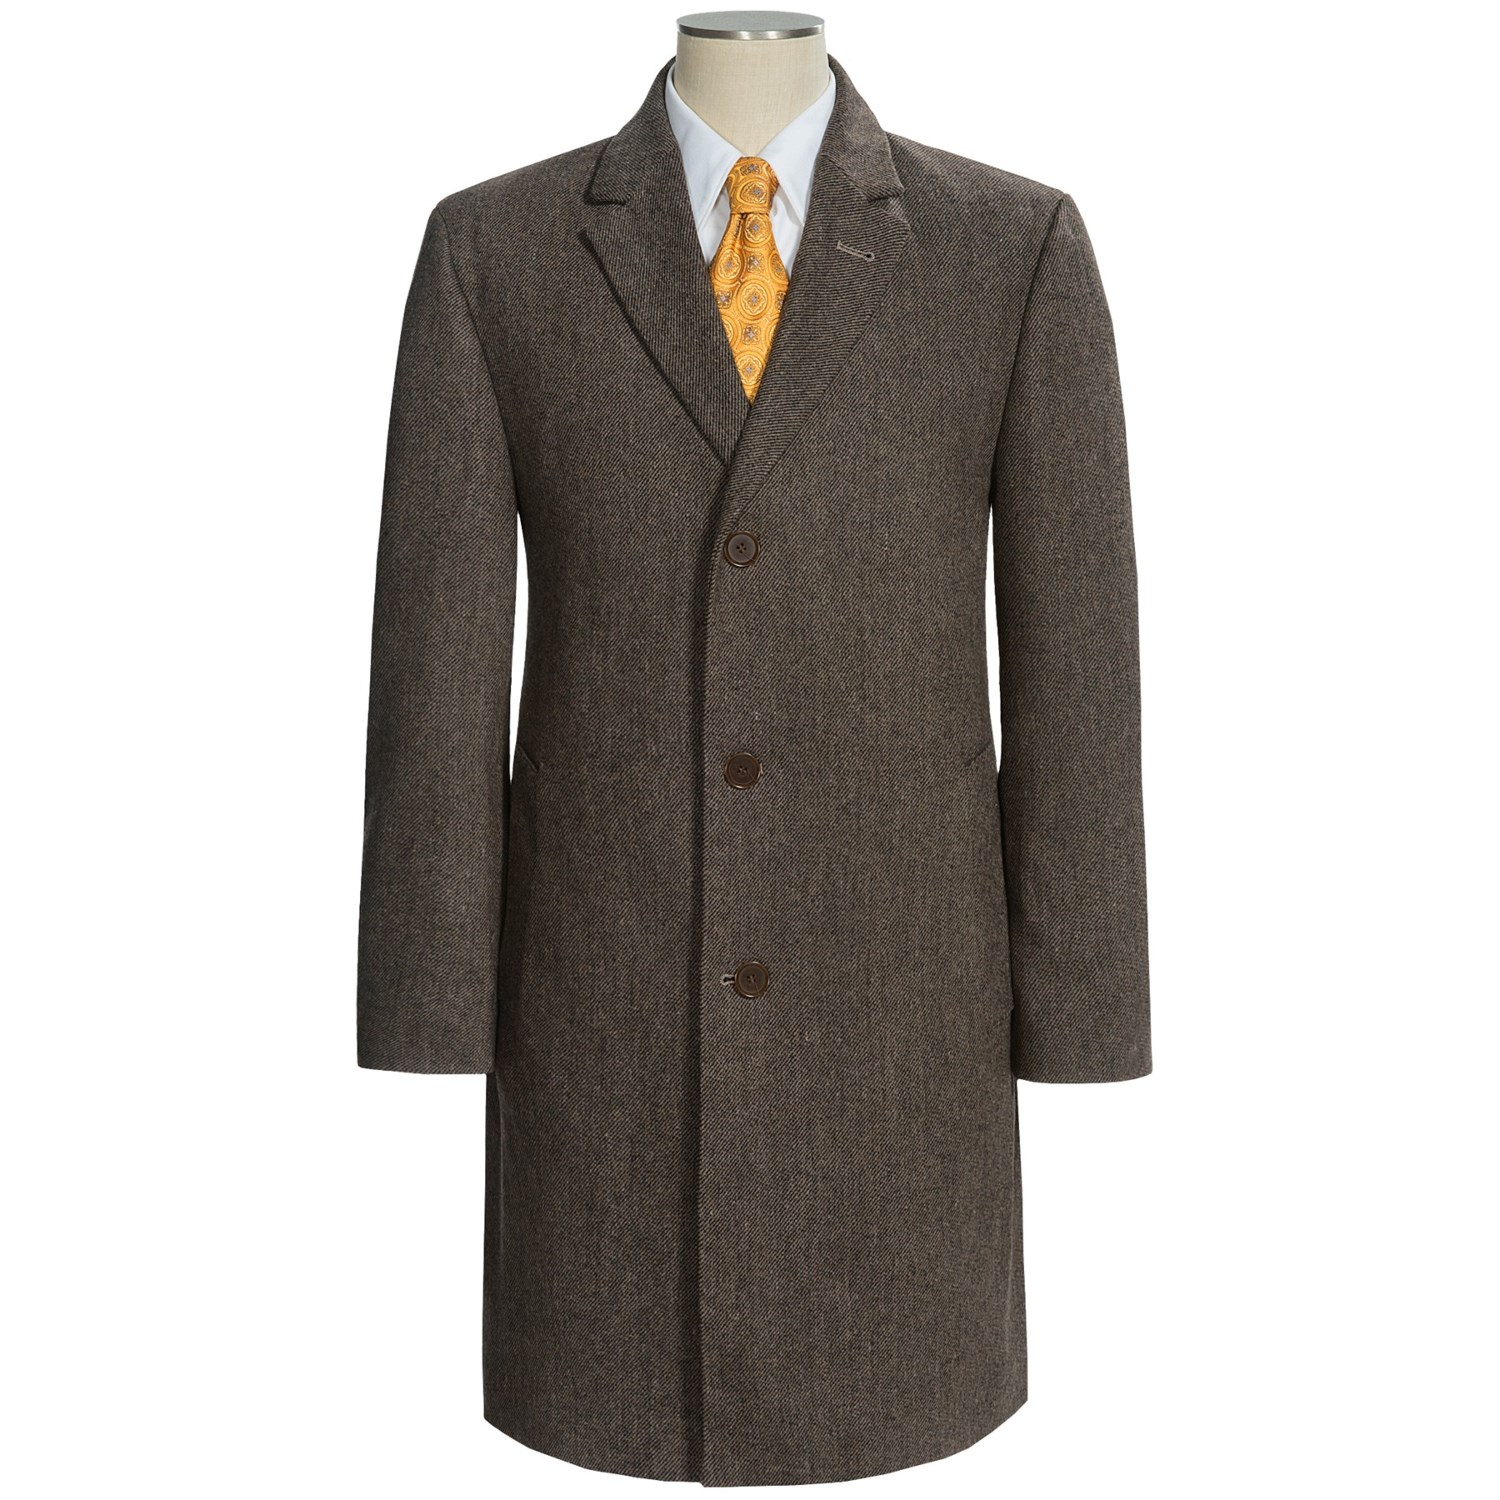 Mens Top Coat. Shop for a men's top coat and find outerwear ideas traditionally featuring wider lapels, and a length that falls past the waist. These options are great for wearing to the office during a rainy day because the thick fabric and a lined interior protect business suits and pressed dress shirts from coming in contact with moisture.